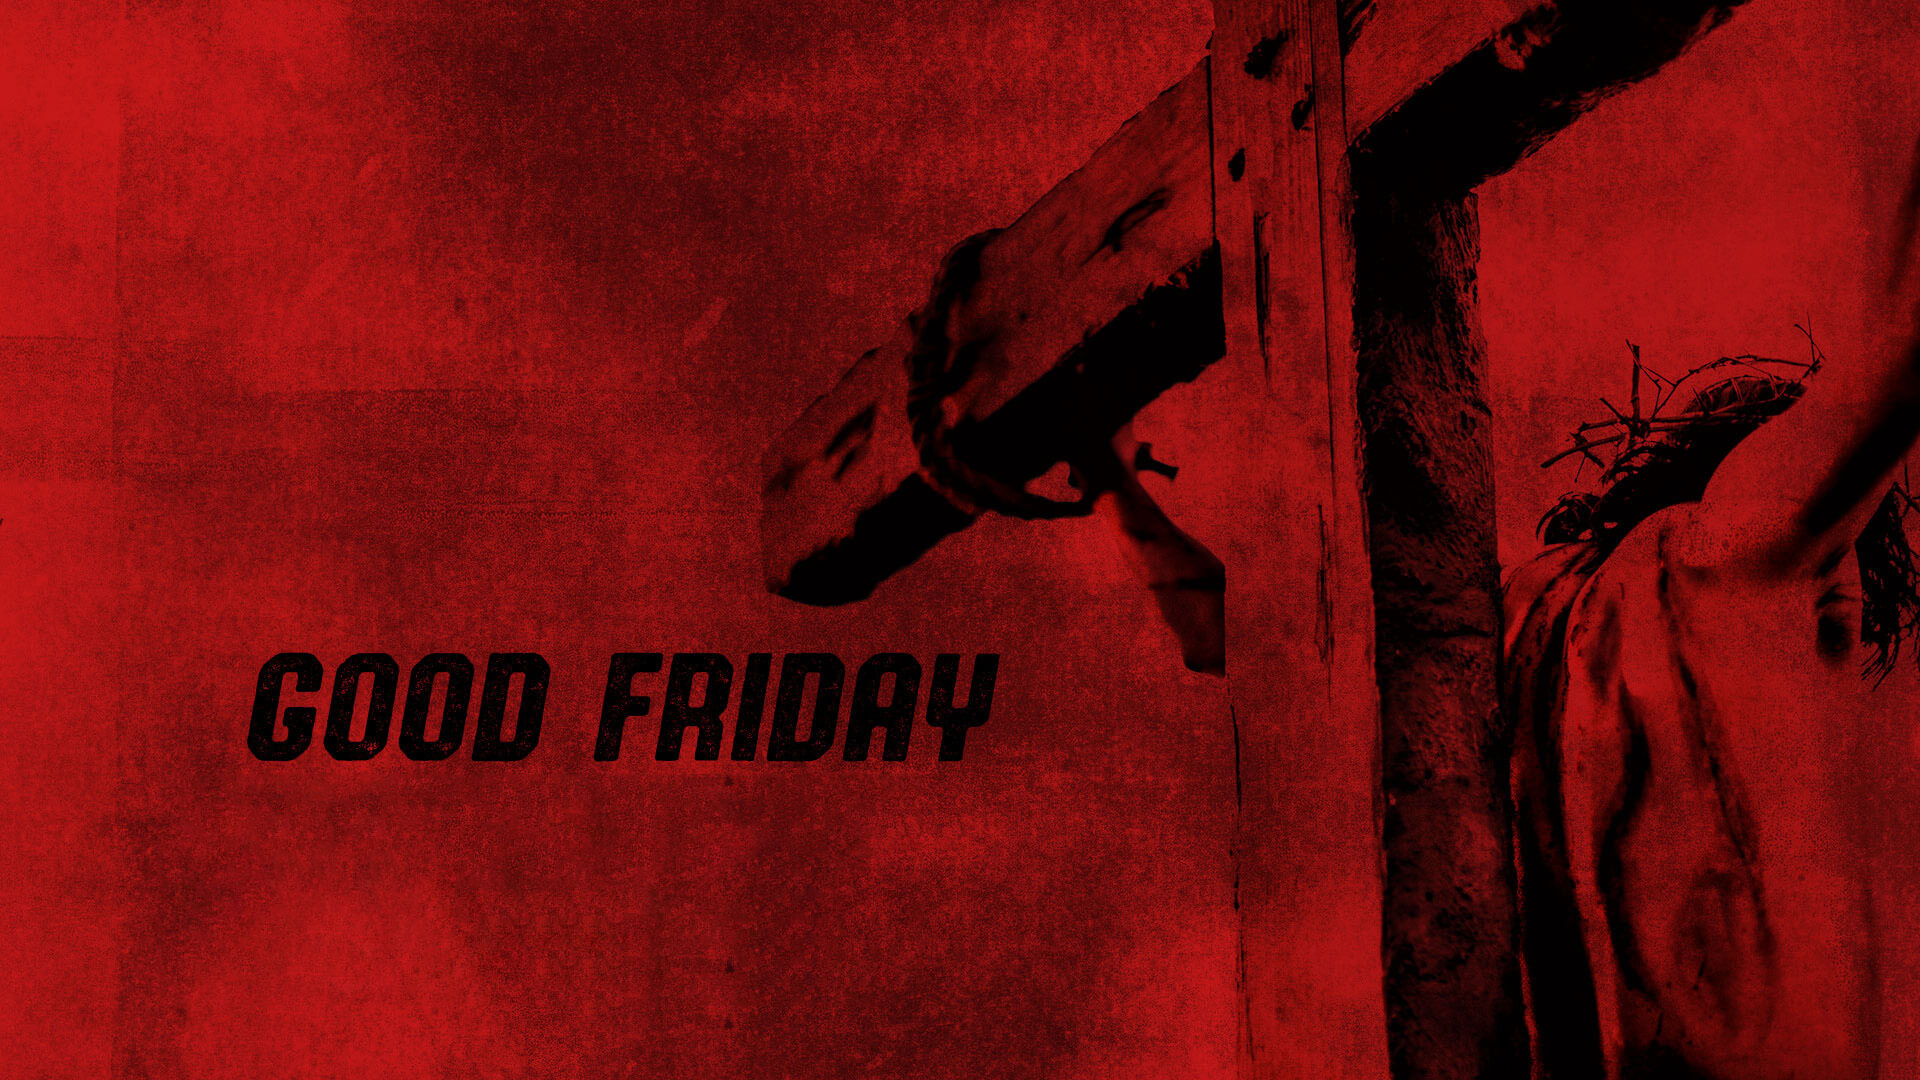 good friday jesus died crucifixion thorns hd wallpaper